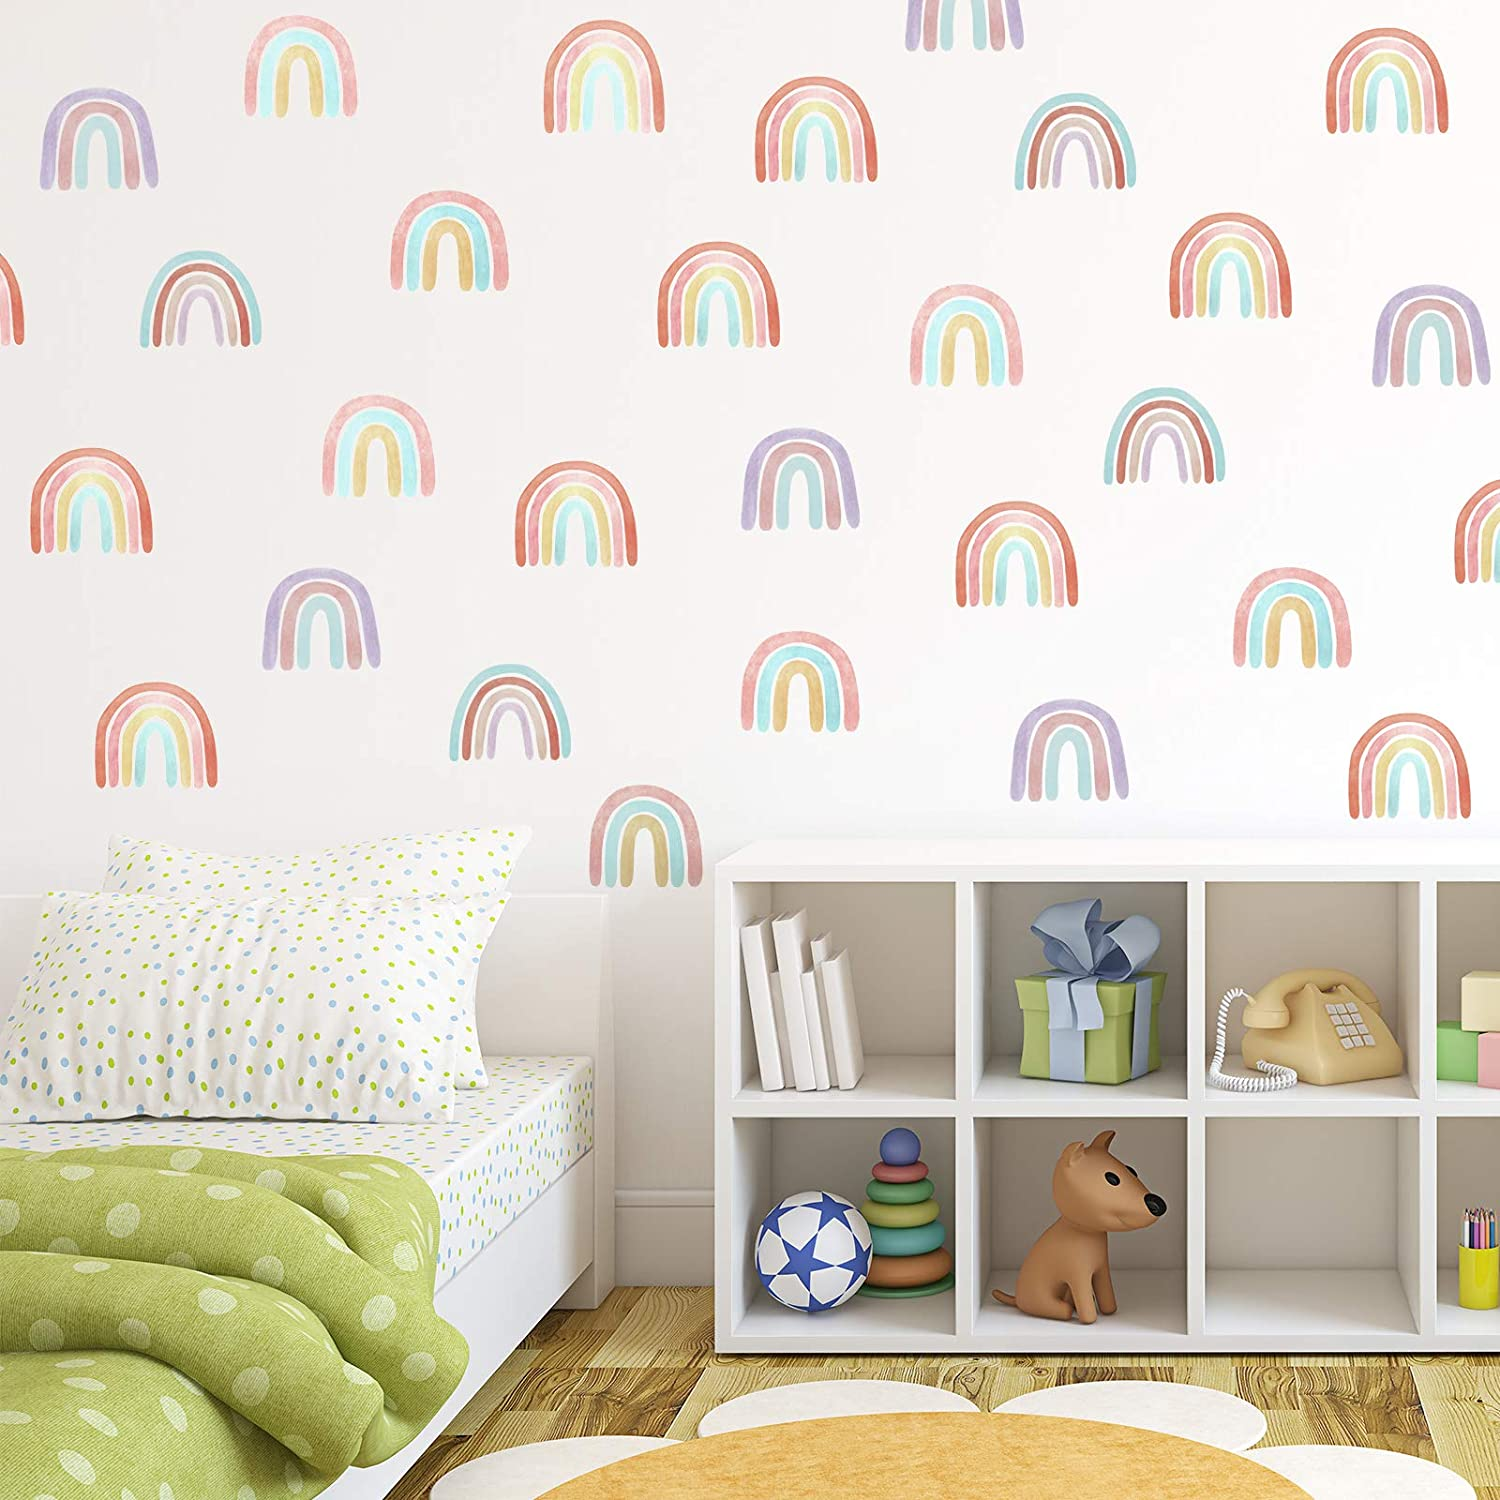 72 Pieces Colorful Rainbow Wall Decals Pastel Rainbow Wall Stickers Room Decor for Girls Kids Nursery Bedroom Decorations